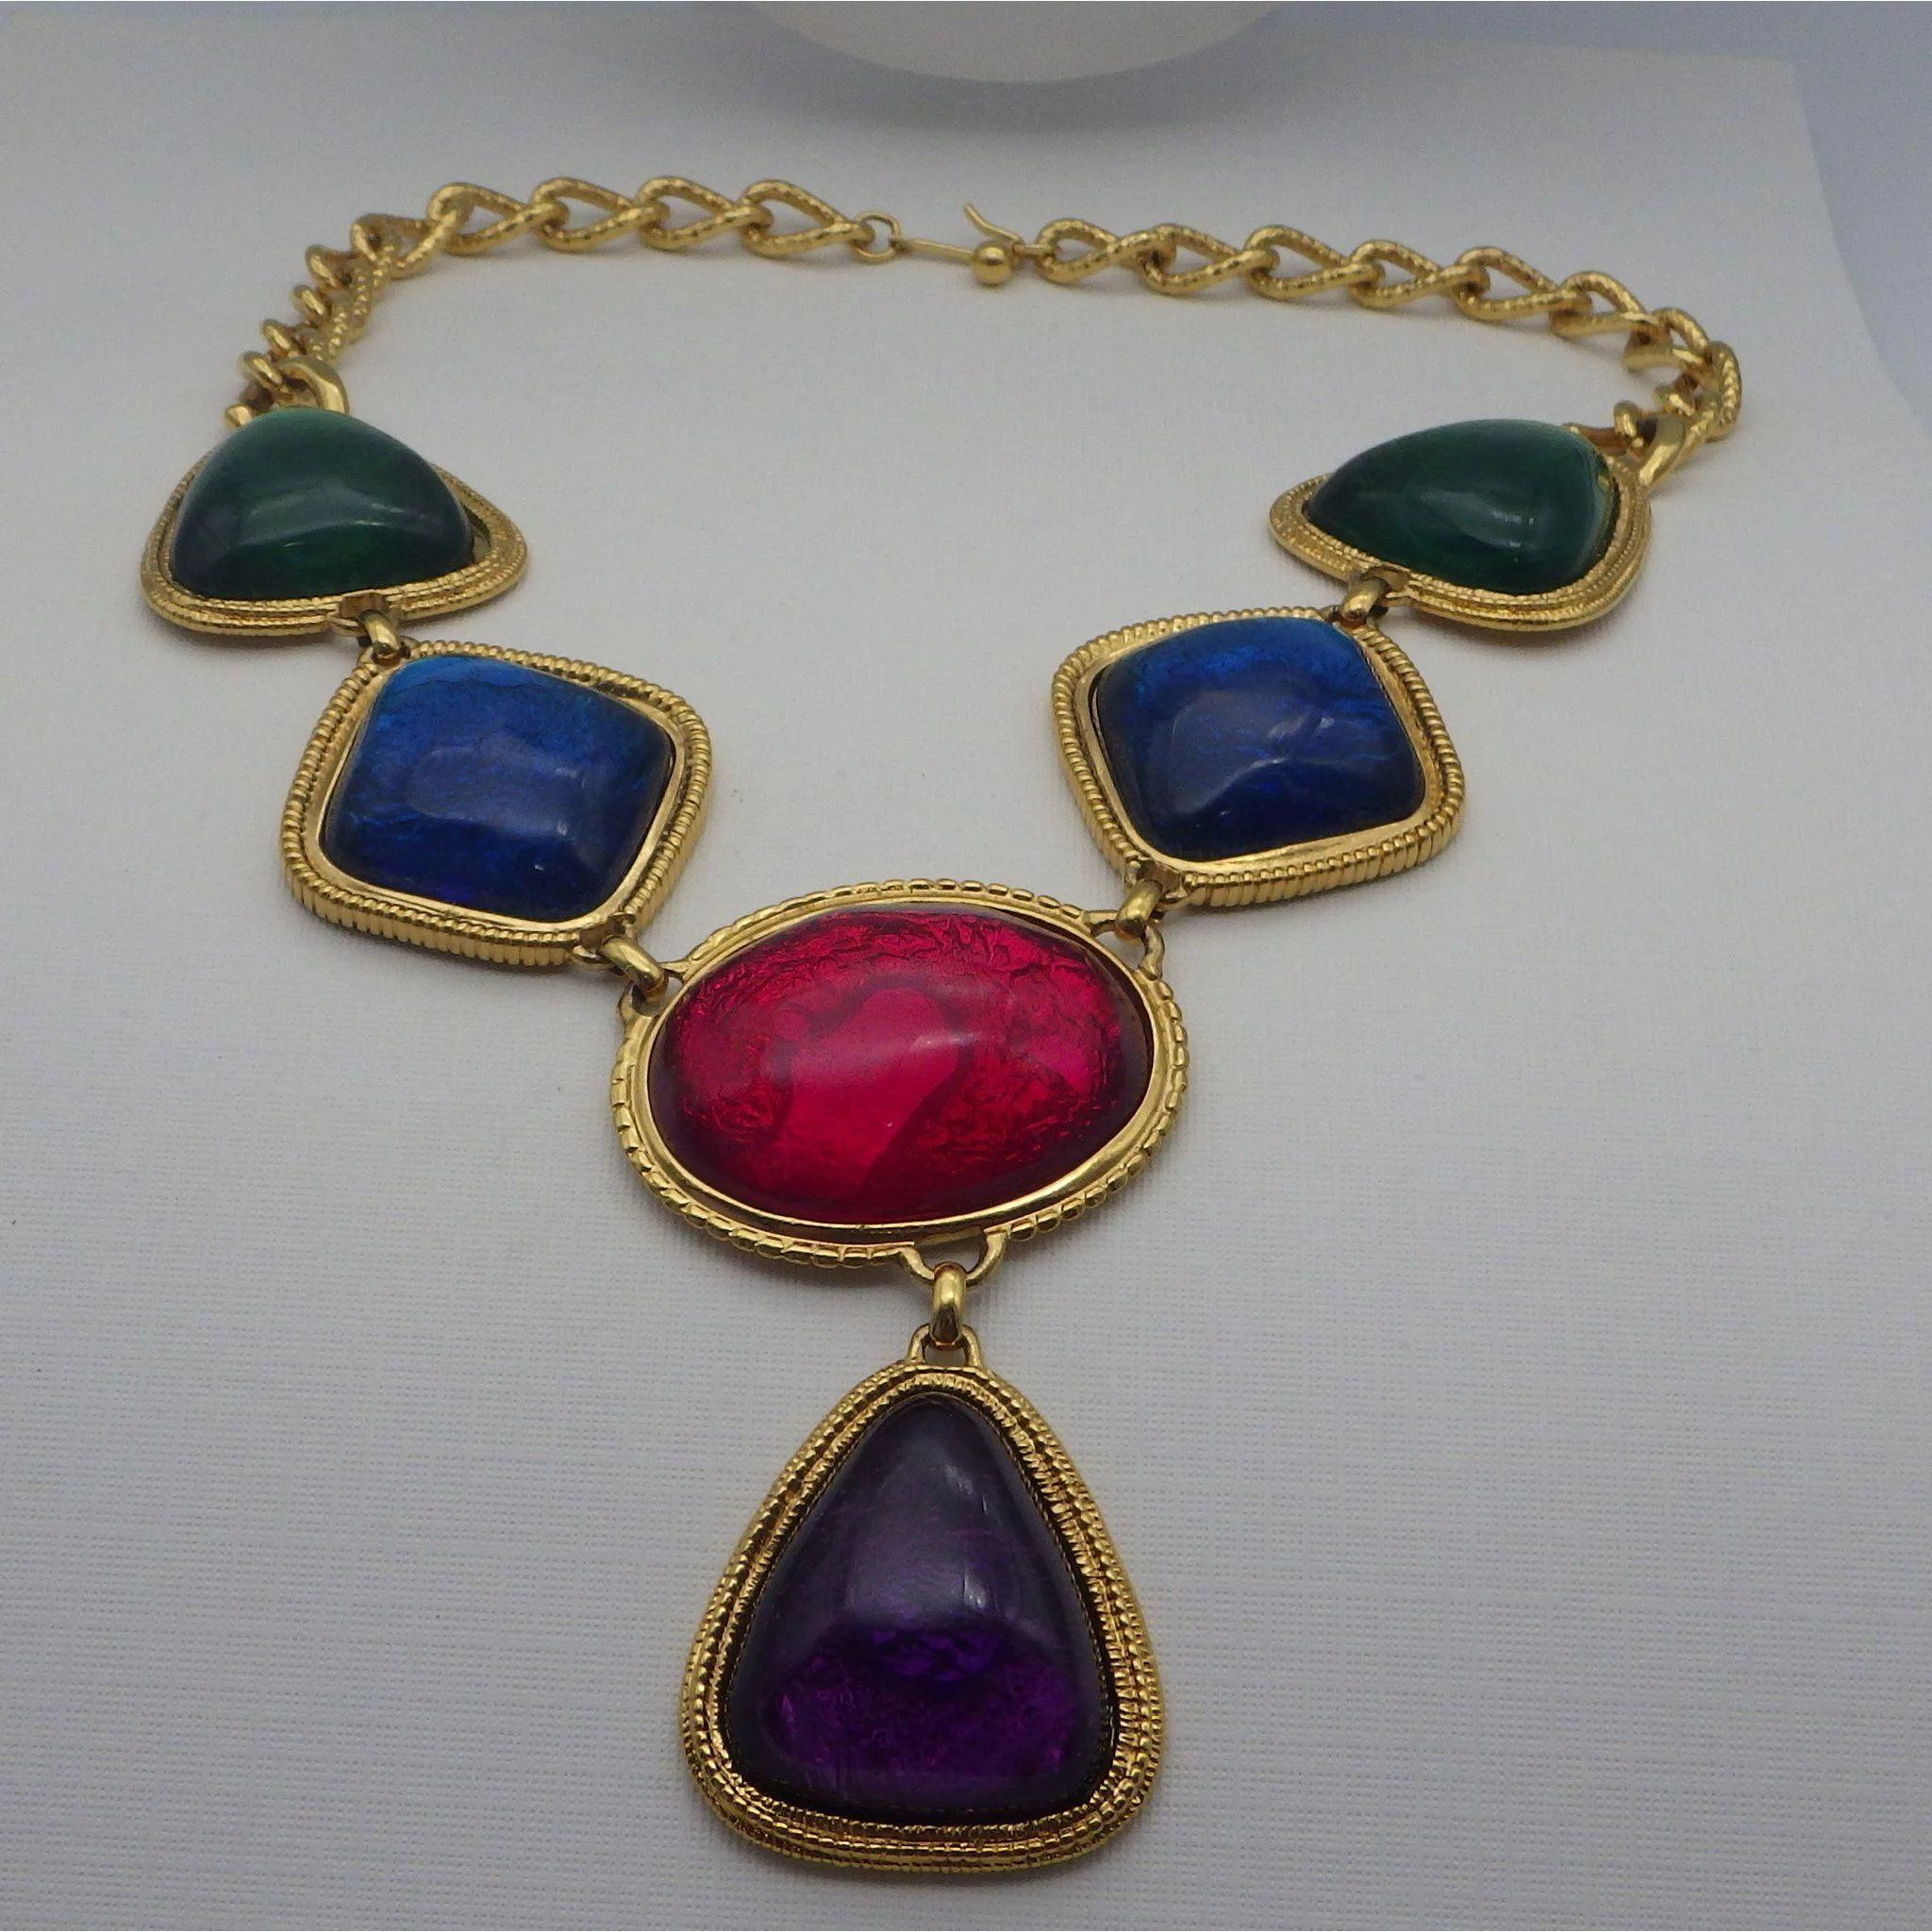 Found: An Amazing Vintage Jewel Tone Necklace from the1920s forecasting